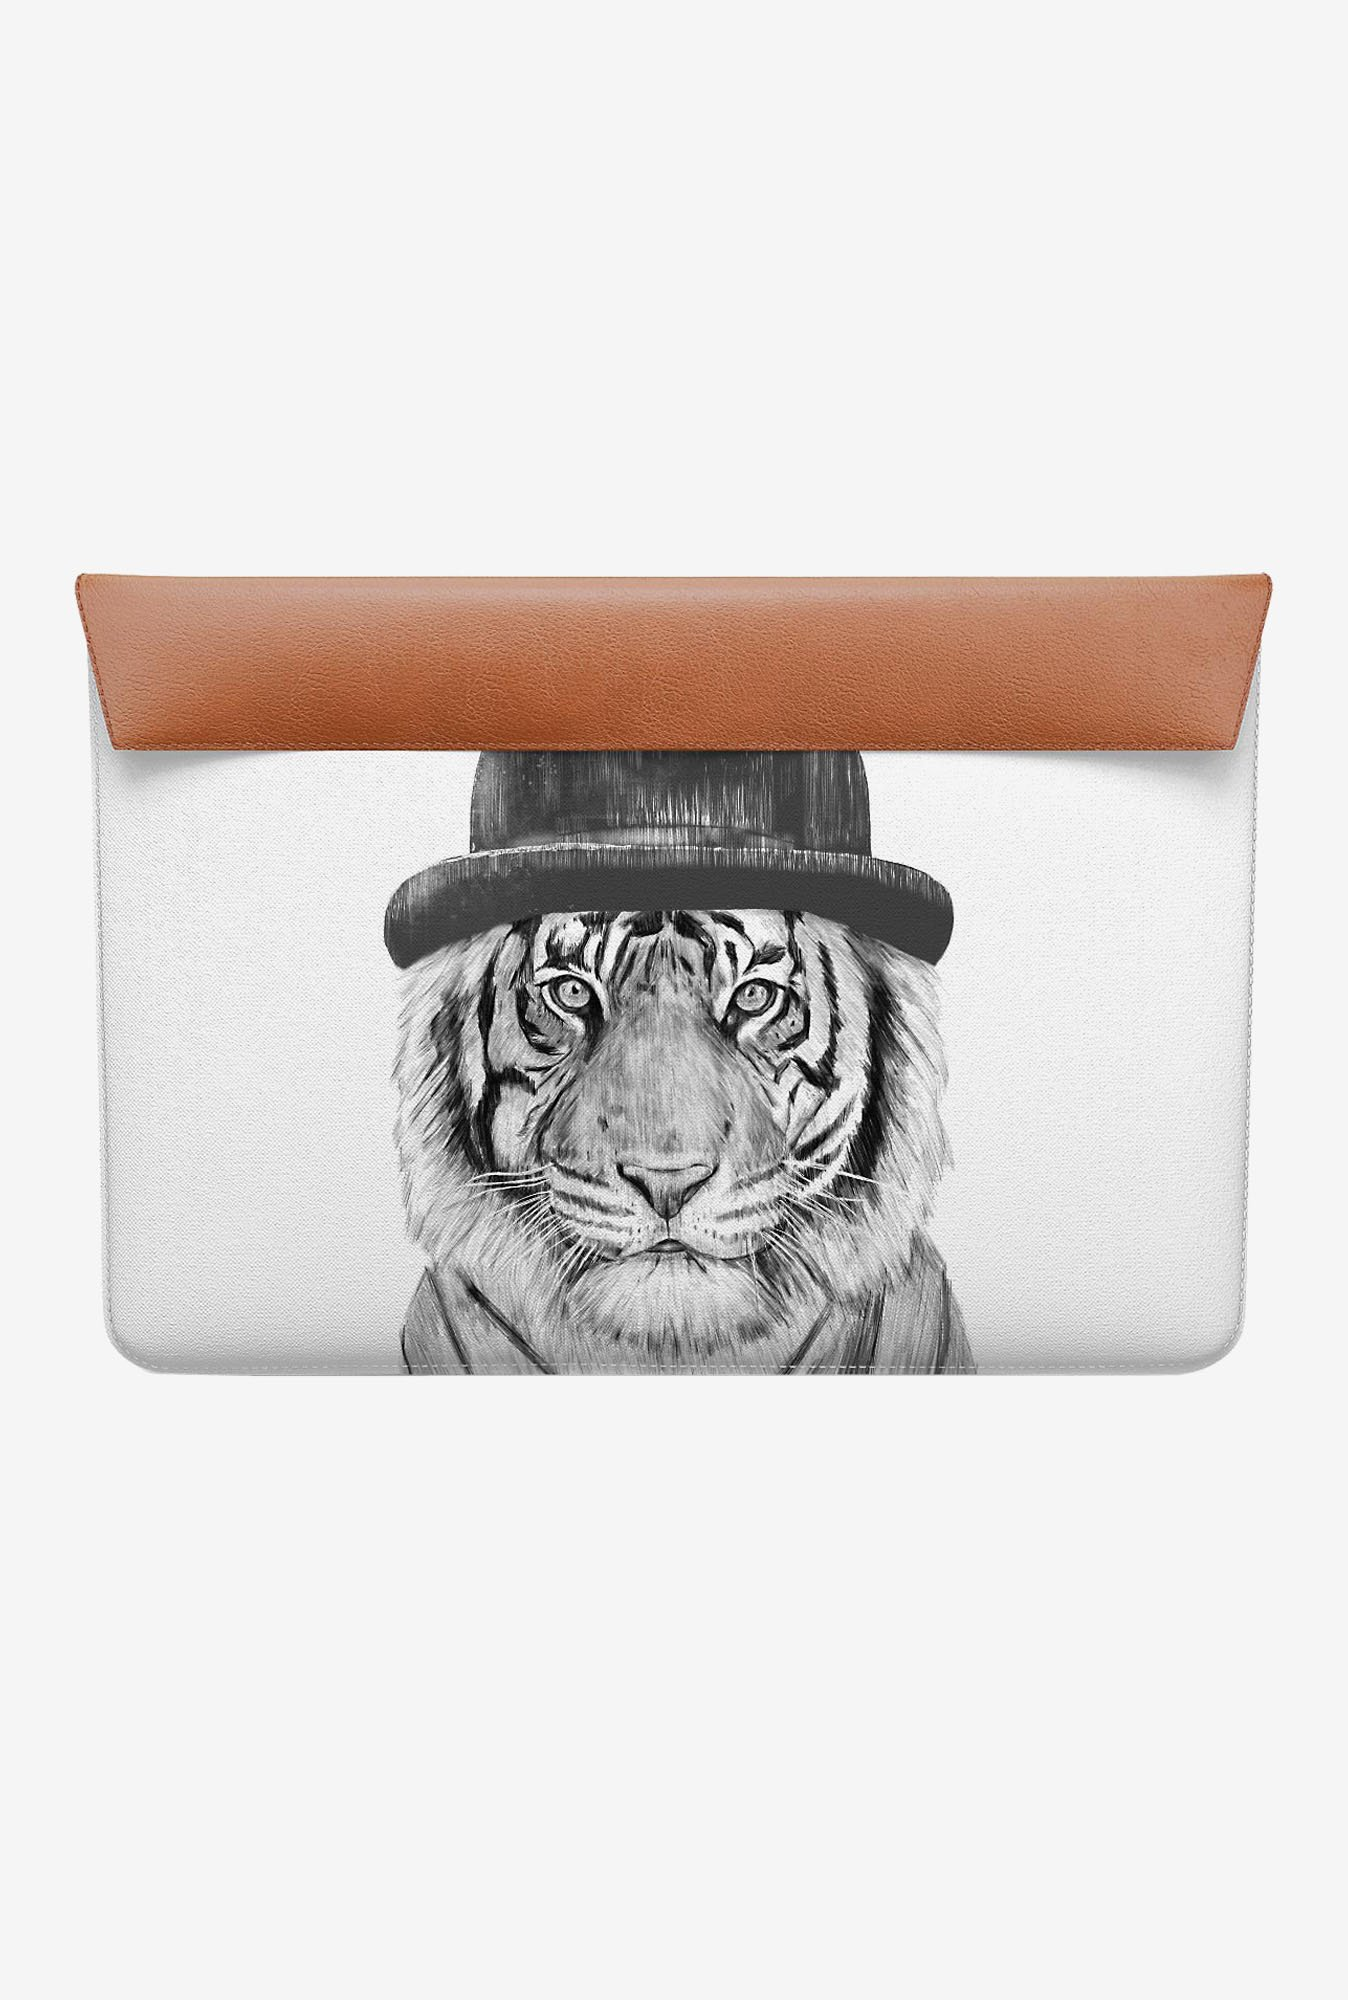 DailyObjects Welcome Jungle MacBook Pro 13 Envelope Sleeve